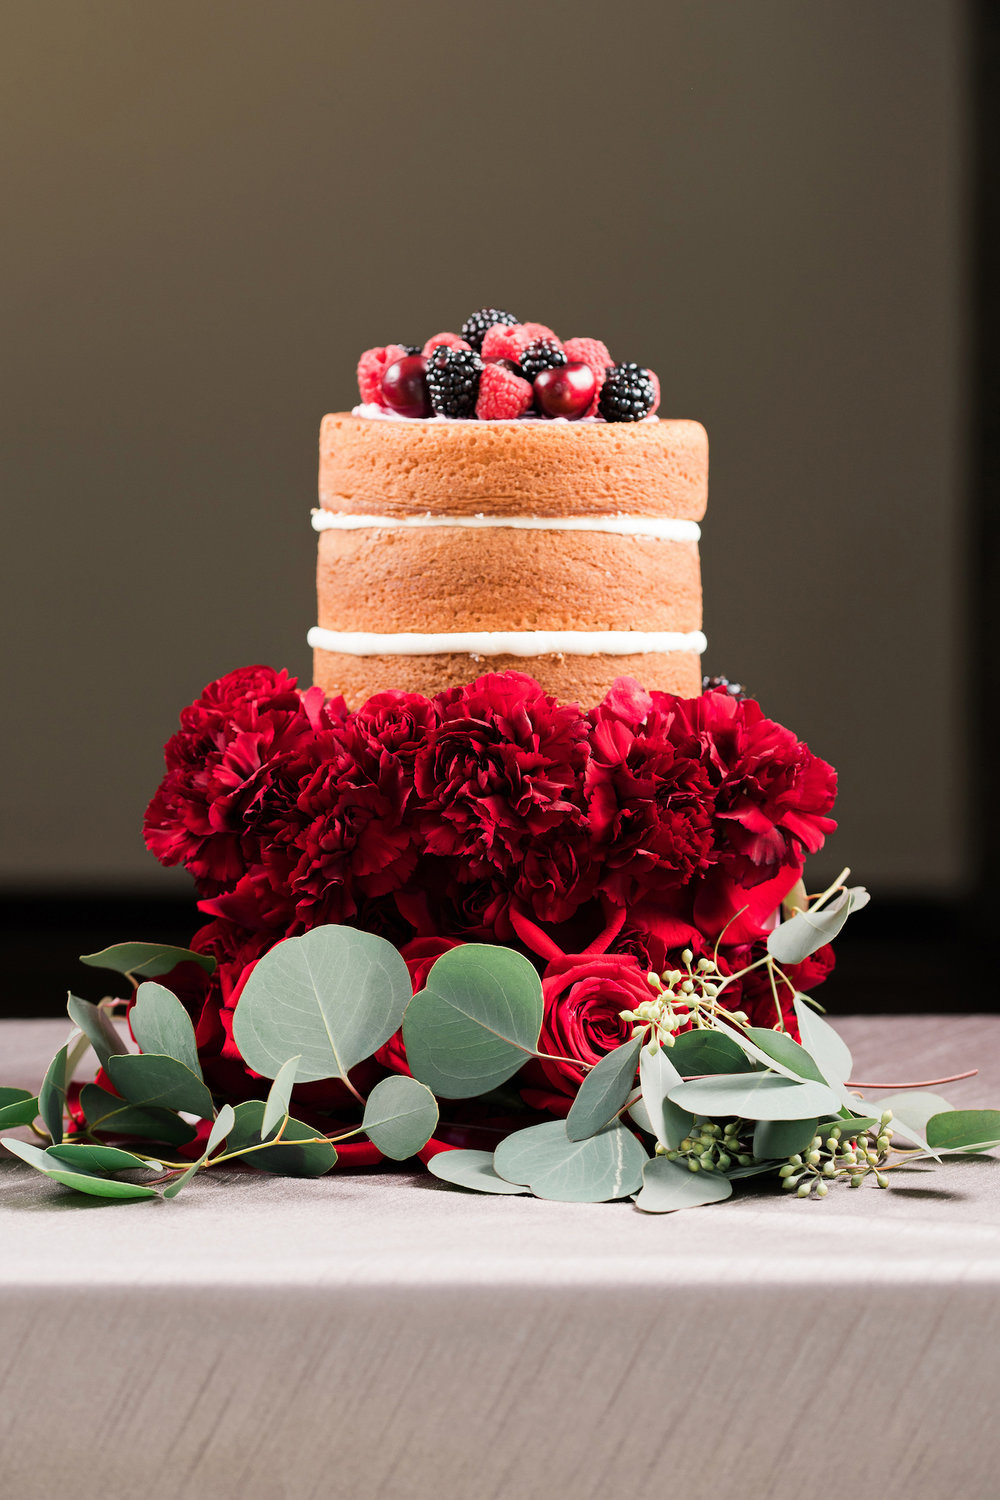 Naked Wedding Cake surrounded by red carnations and green eucalyptus leaves, topped with berries — luxurious and romantic vintage wedding inspiration — photo by Marianne Blackham Photography — as seen on www.BrendasWeddingBlog.com